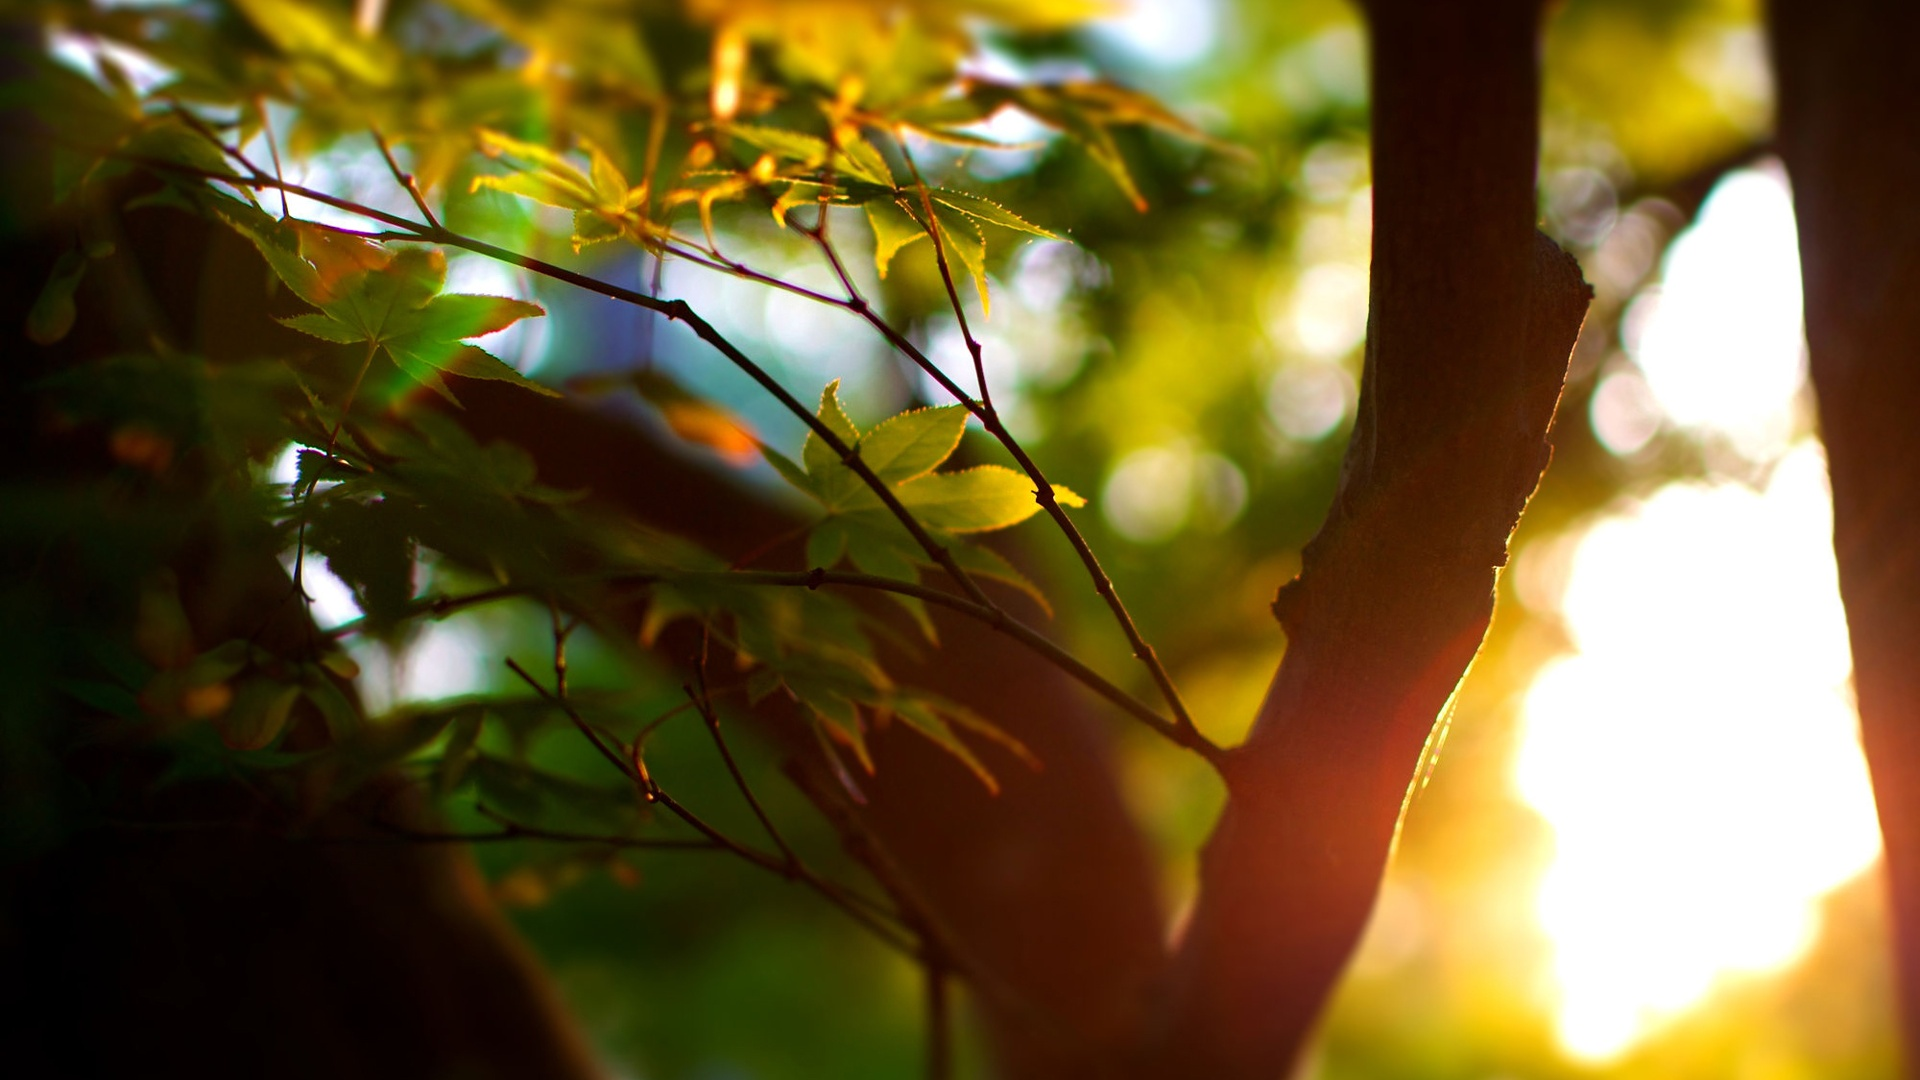 Wordpress Blog Bilder 12 Pretty Hd Sunlight Wallpapers